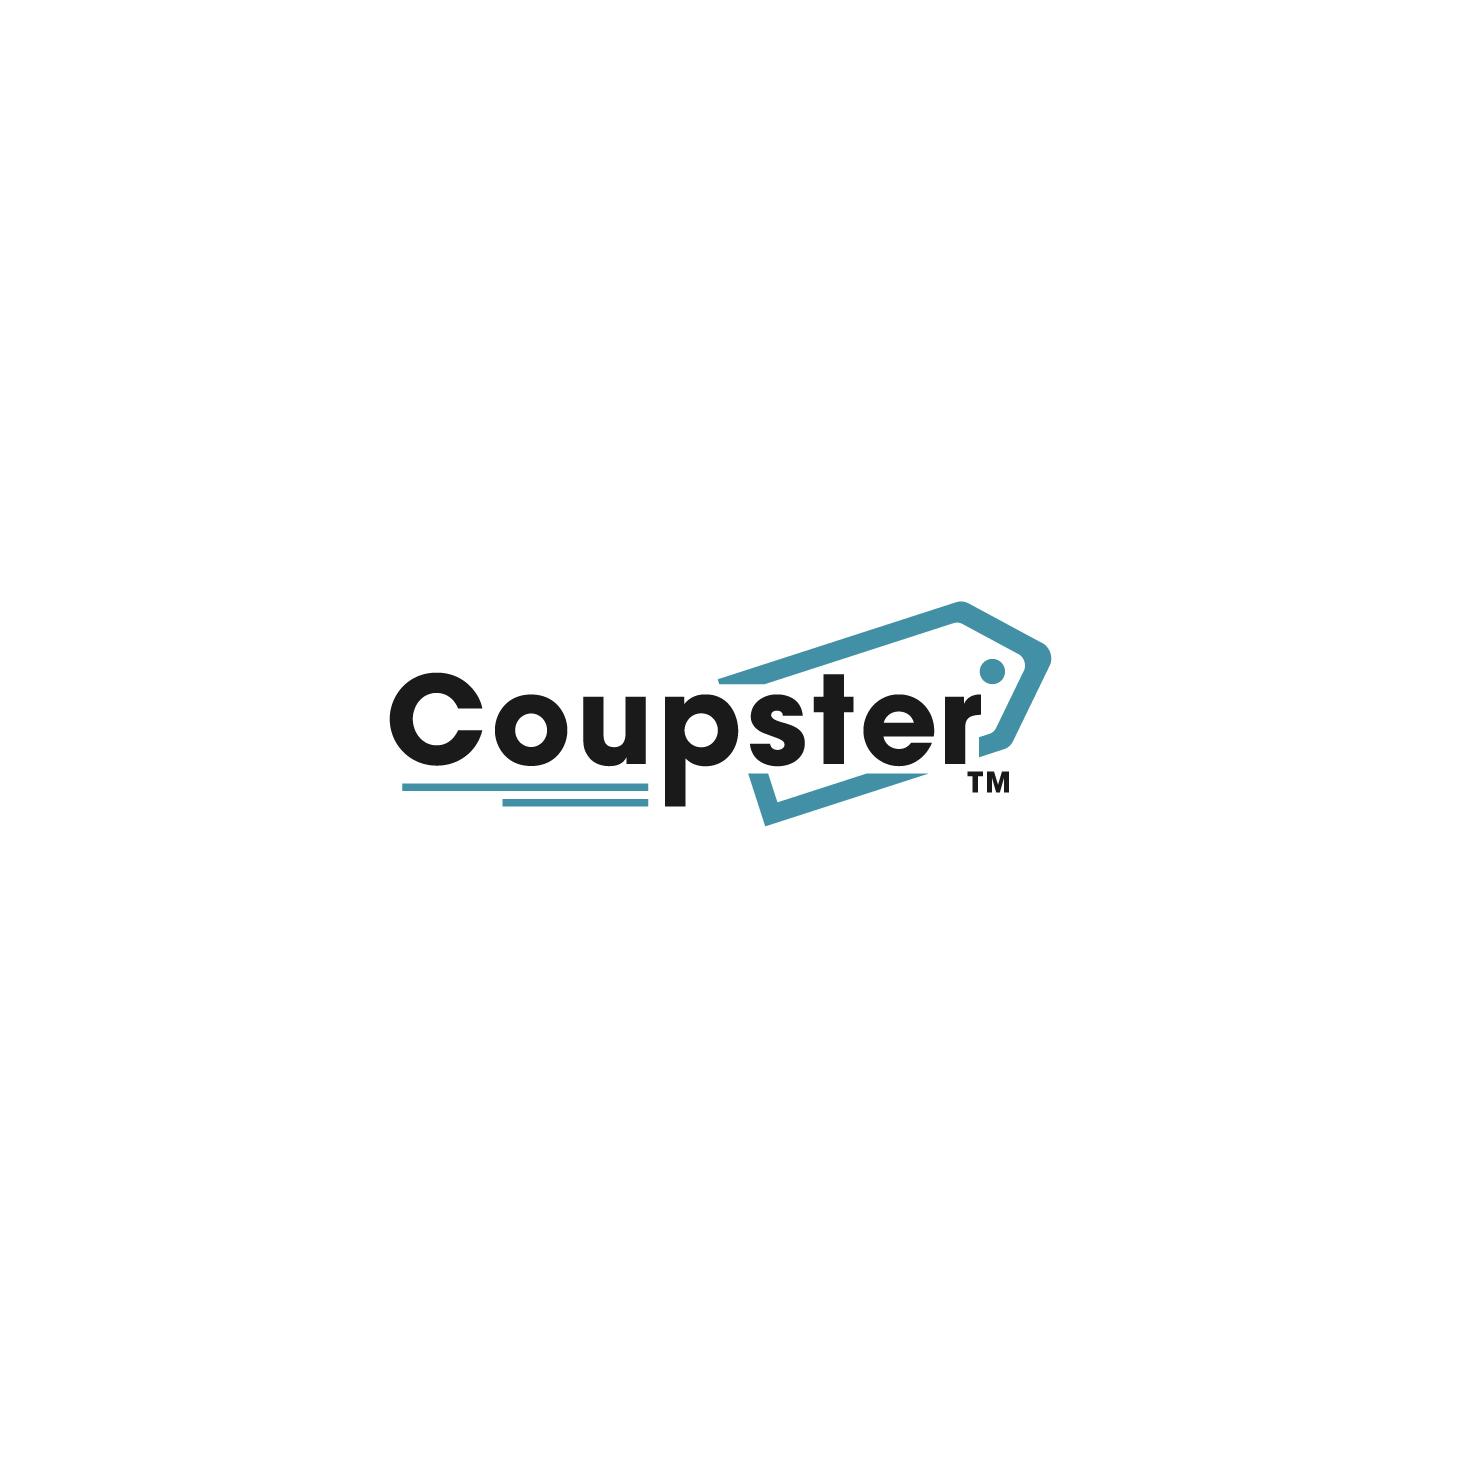 Professional Bold Coupon Logo Design For Coupster By Rizkialdy